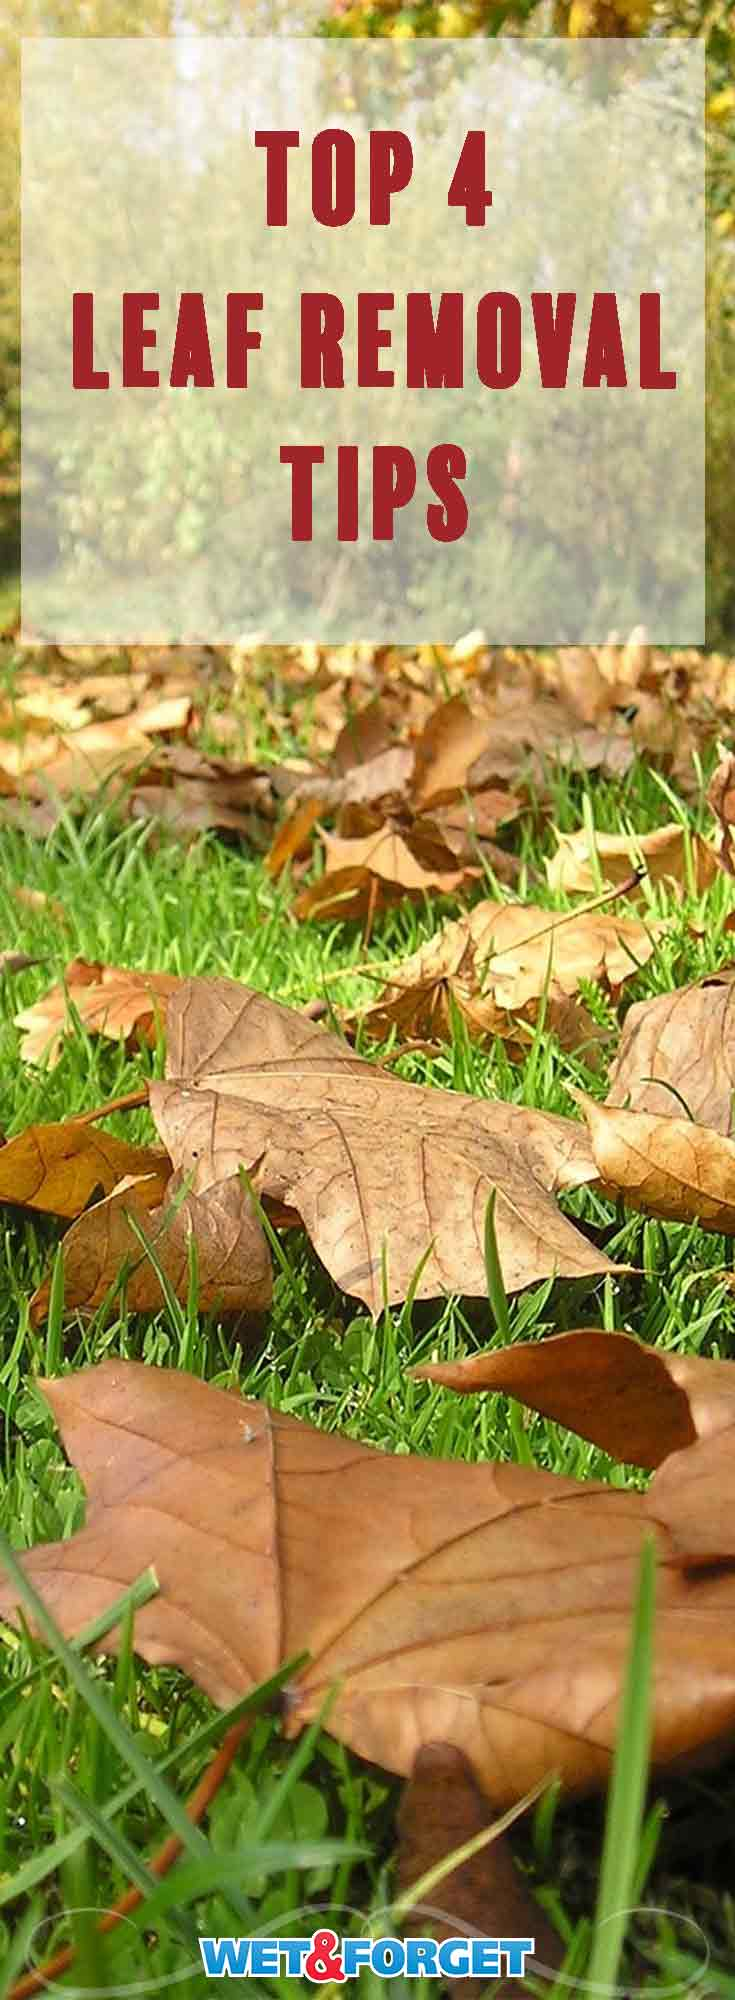 Ask Wet Amp Forget Get Our 4 Top Leaf Removal Tips And Make